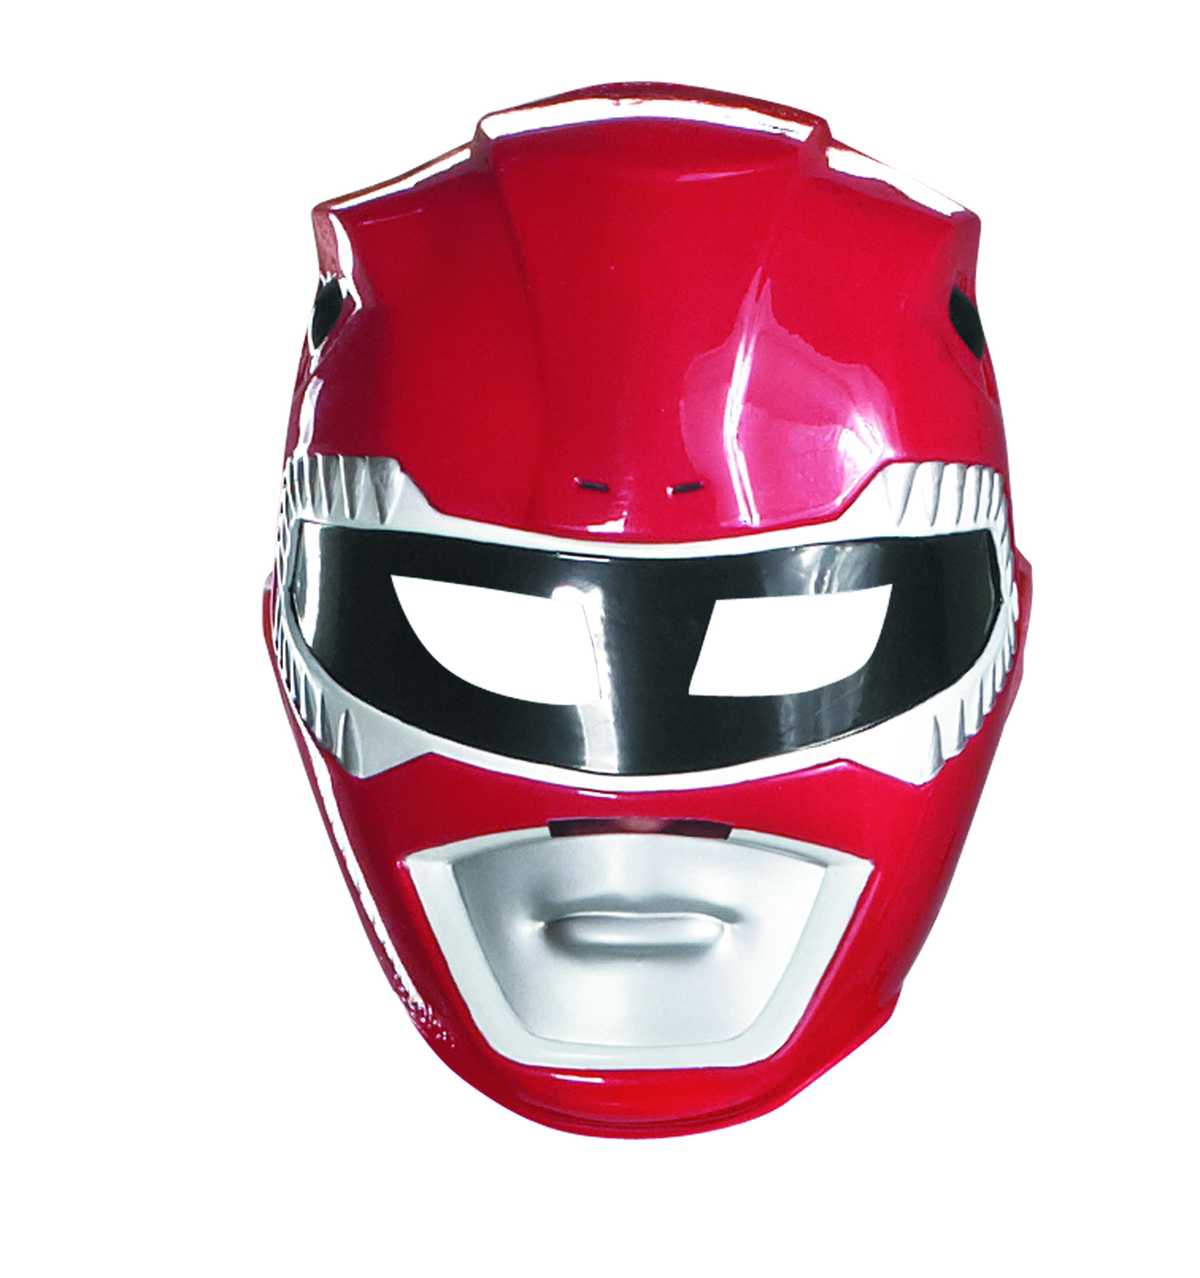 MMPR RED RANGER VACUFORM MASK